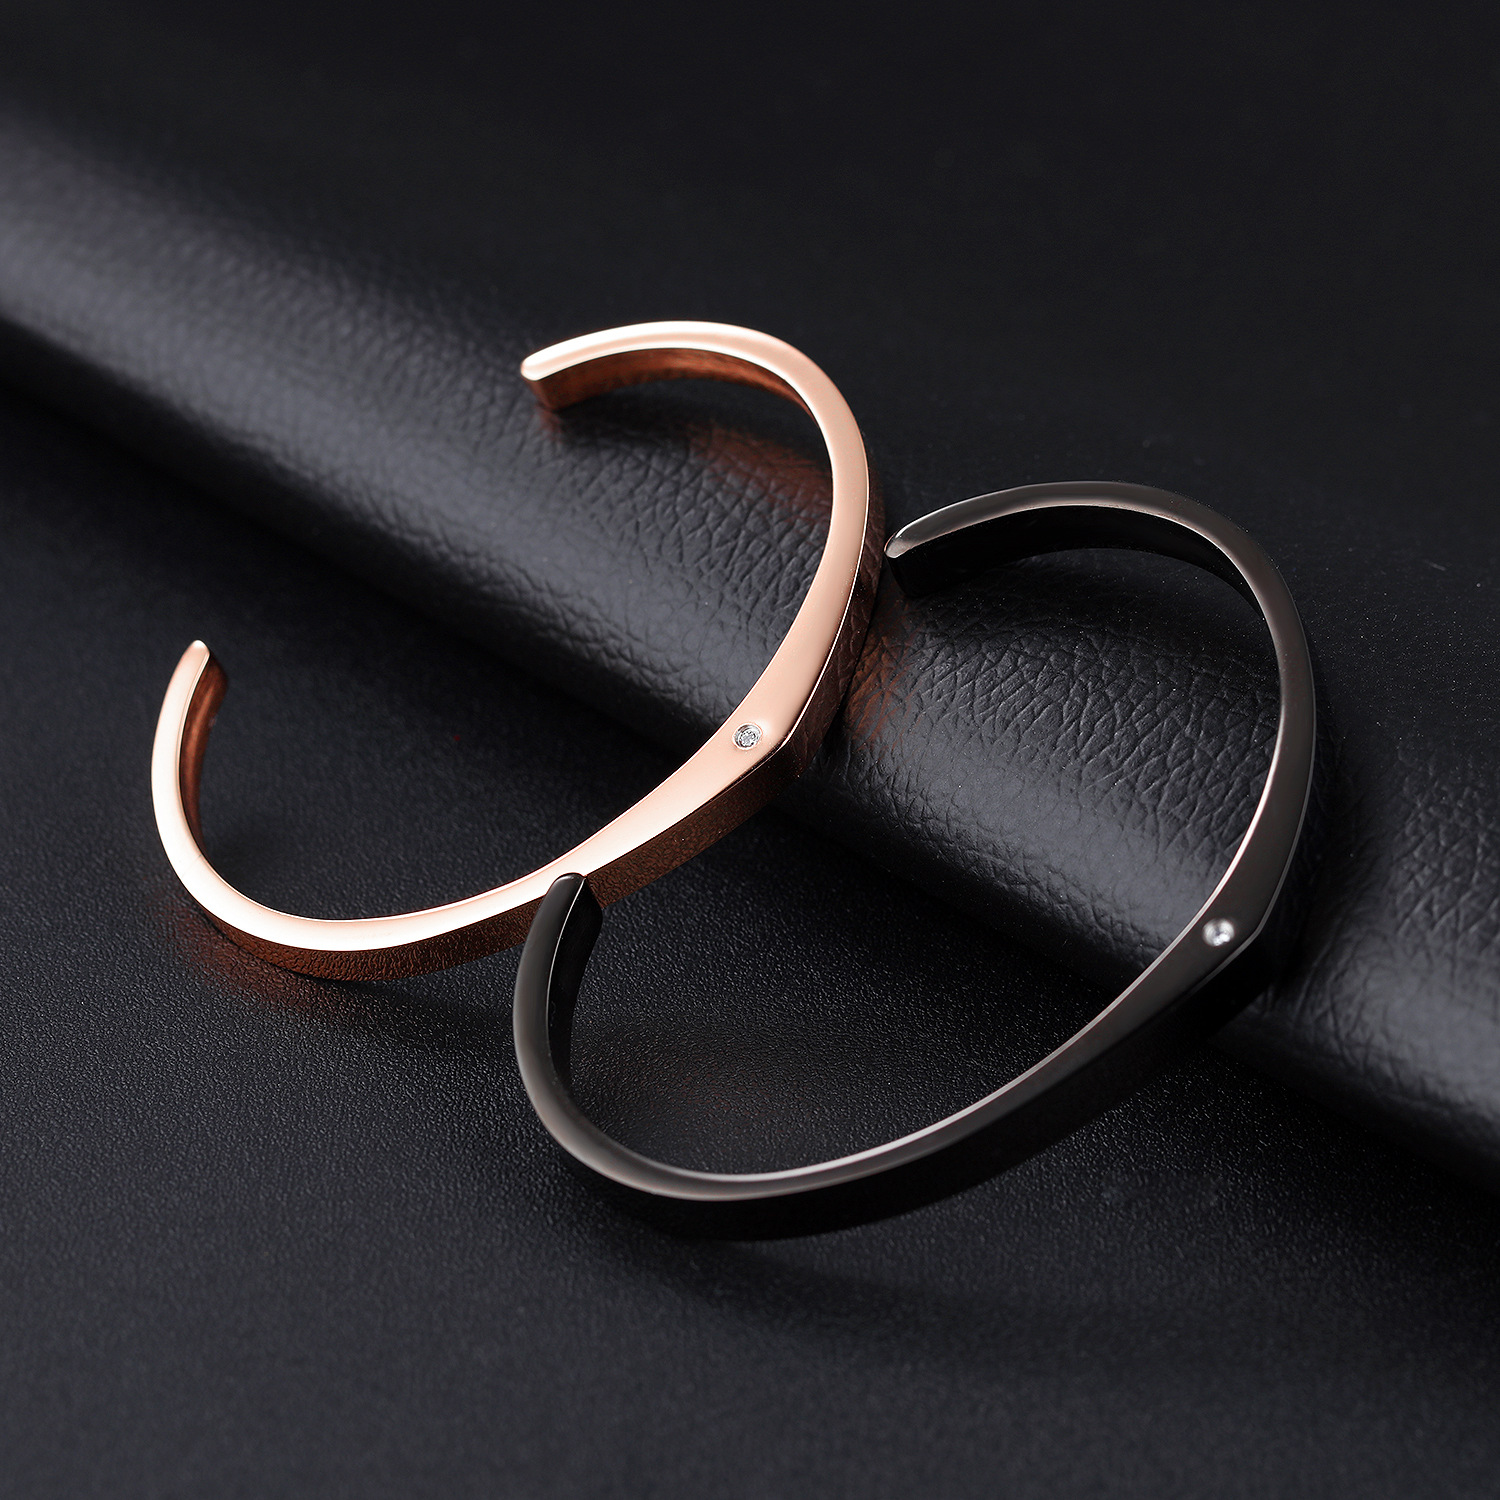 Drop Shipping Stylish Couple Cuff Open Valentine's Day Gift Bracelet Bangle Fish Shaped Titanium Rose Gold Charm Zircon Bracelet